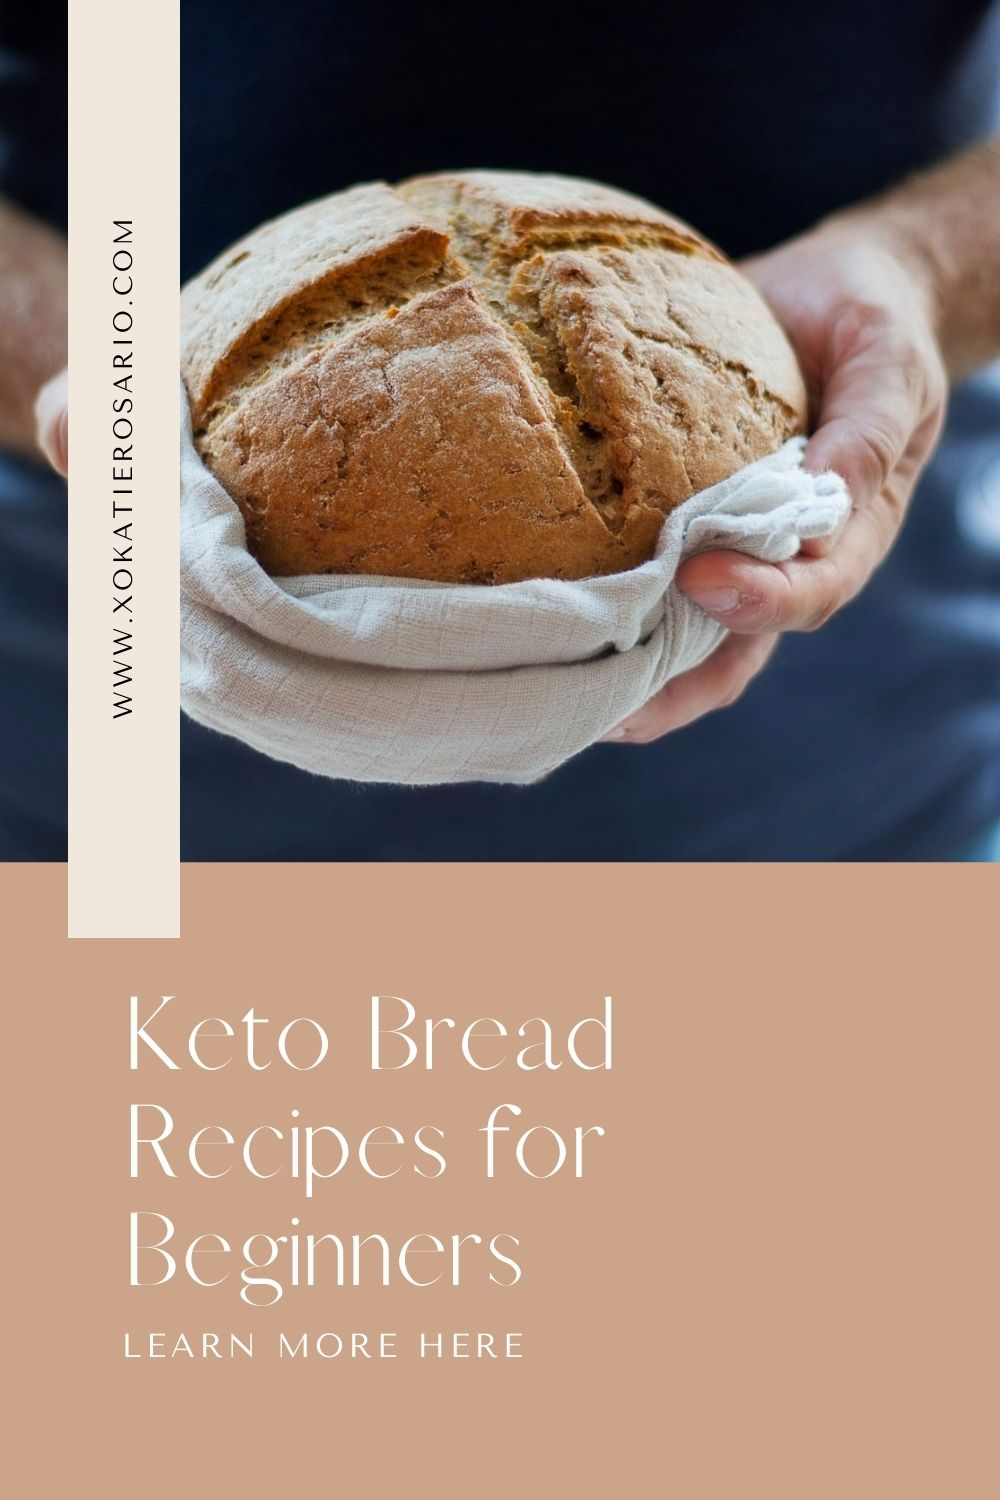 Keto Bread Recipes For Beginners - Find out how many different ways there are to bake grain-free keto bread that will fit your diet needs! There's nothing better than freshly baked bread without all those carbs. We've compiled some fantastic recipes as well as tips on where to find ingredients so you can start baking today. From vegan, gluten-free, dairy-free, these recipes have something for everyone, whether you're looking for breakfast.